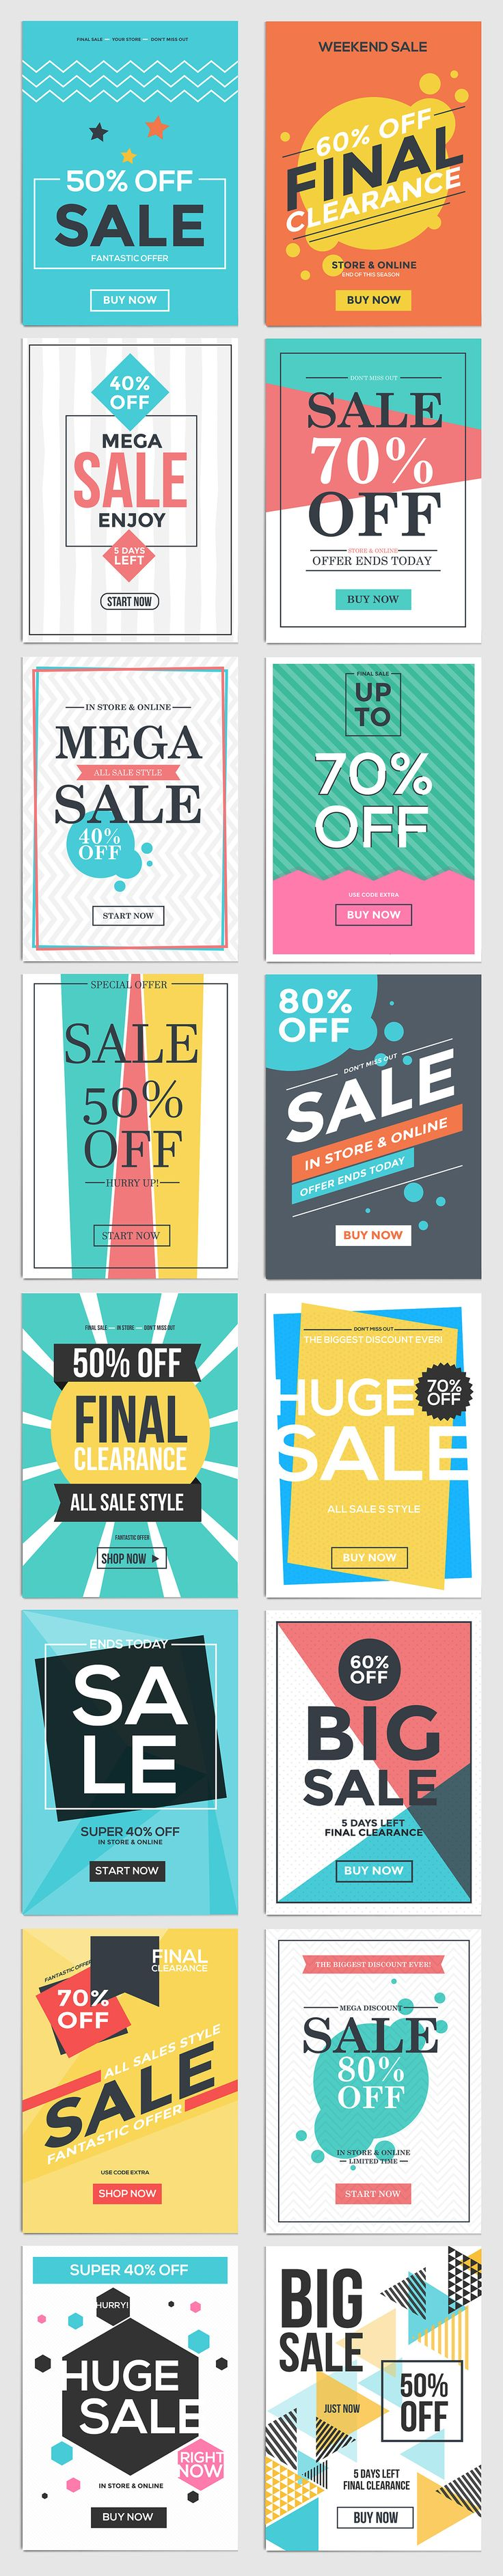 Poster design for college fest - Flat Design Sale Flyer Templates